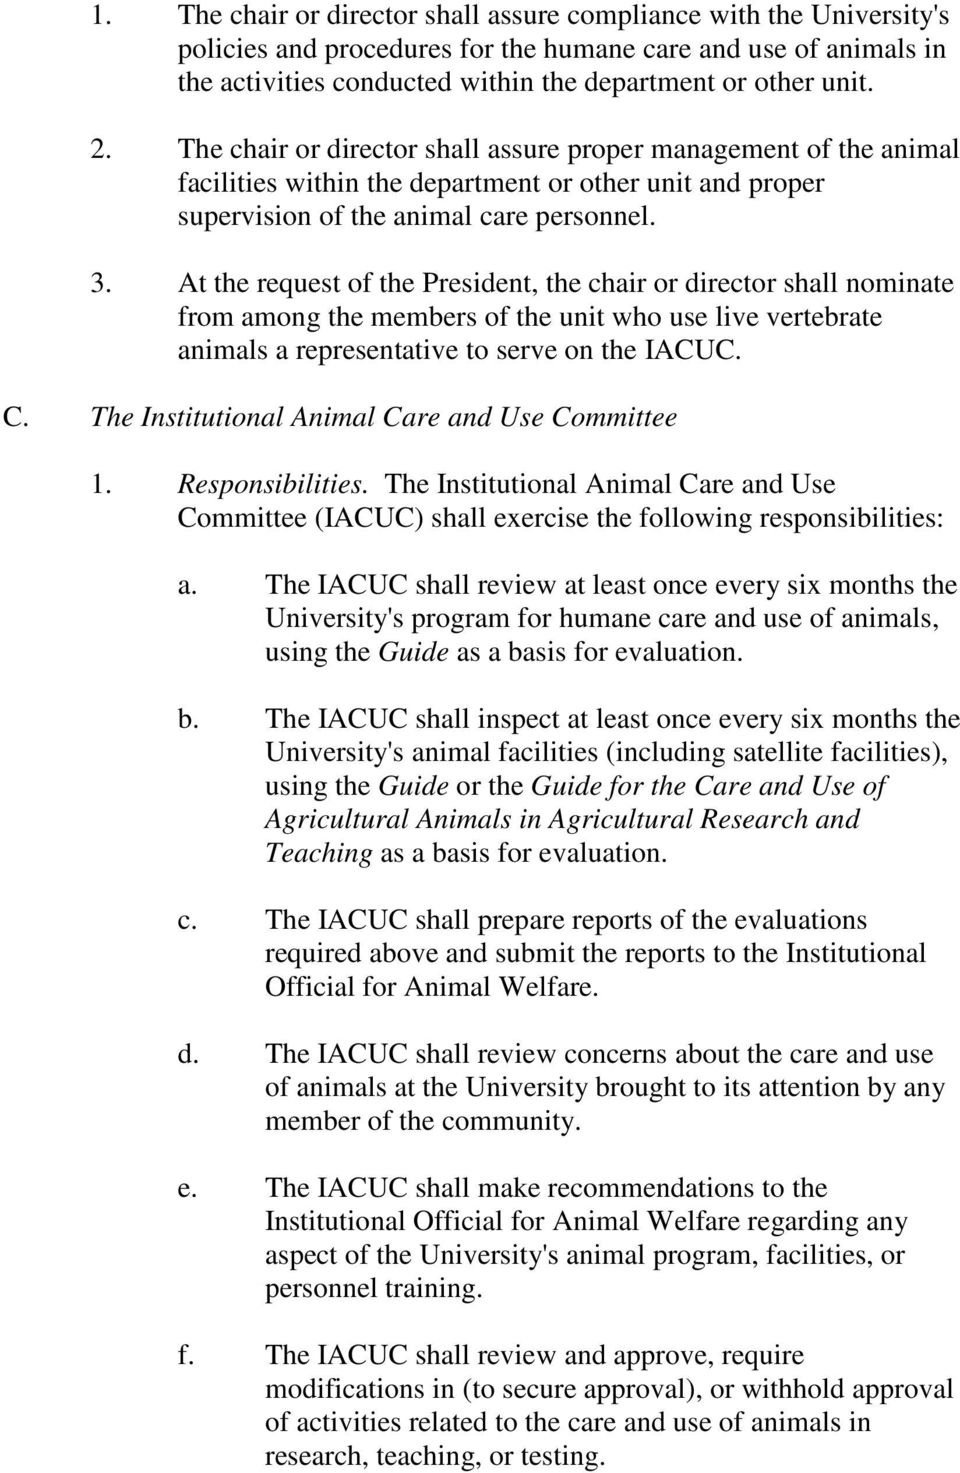 At the request of the President, the chair or director shall nominate from among the members of the unit who use live vertebrate animals a representative to serve on the IACUC. C.